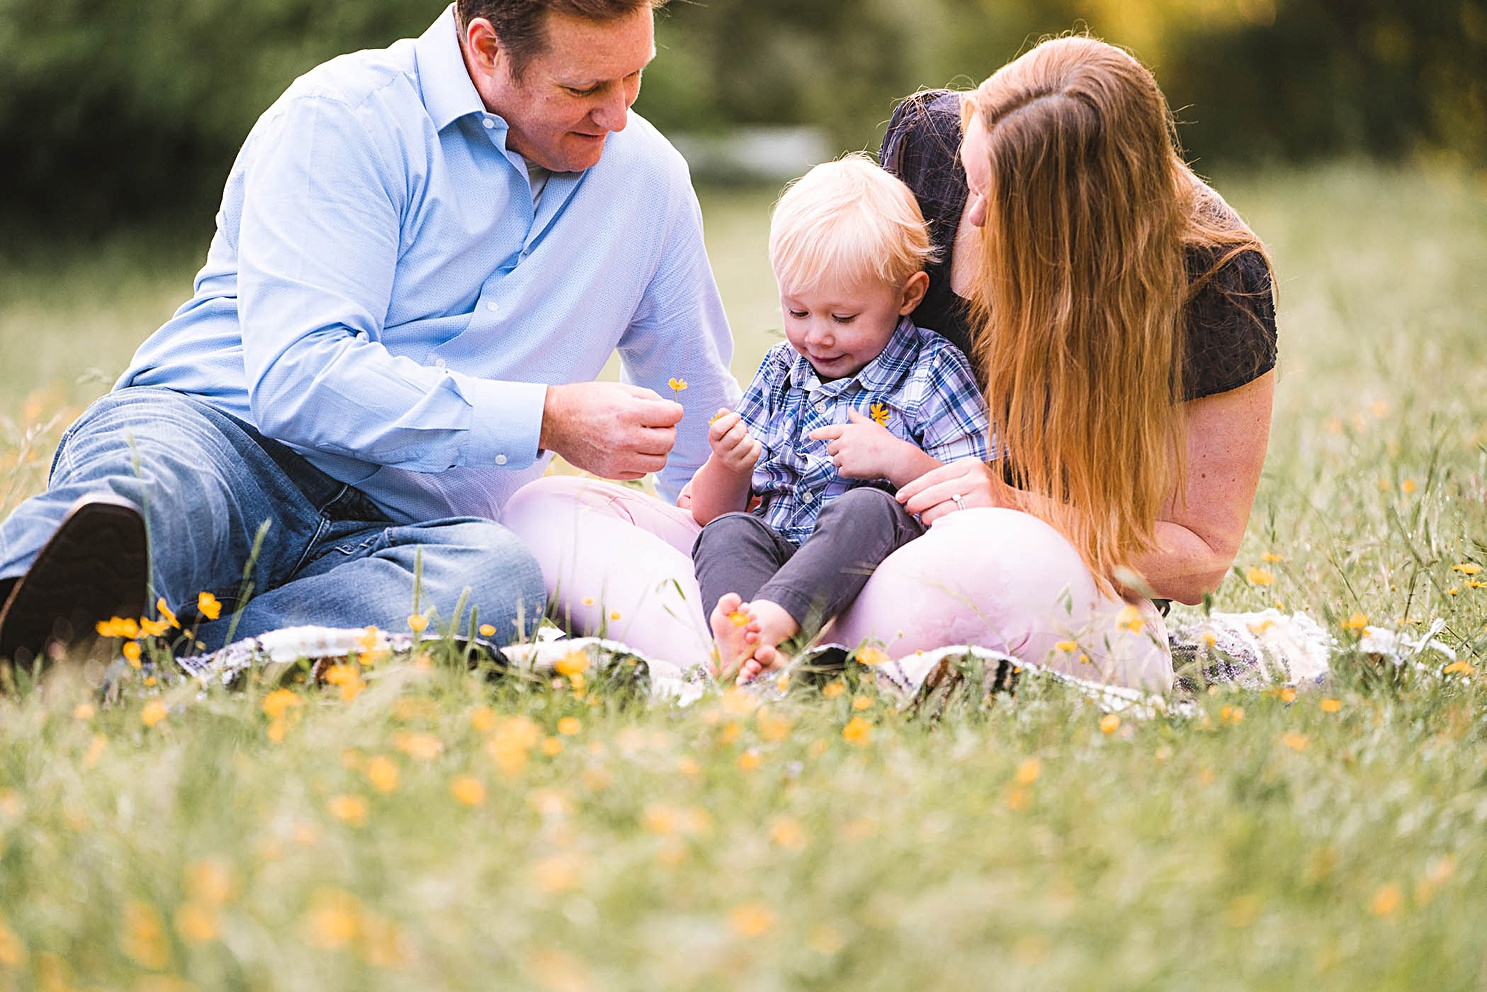 candid+family+photography+austin_0402.jpg